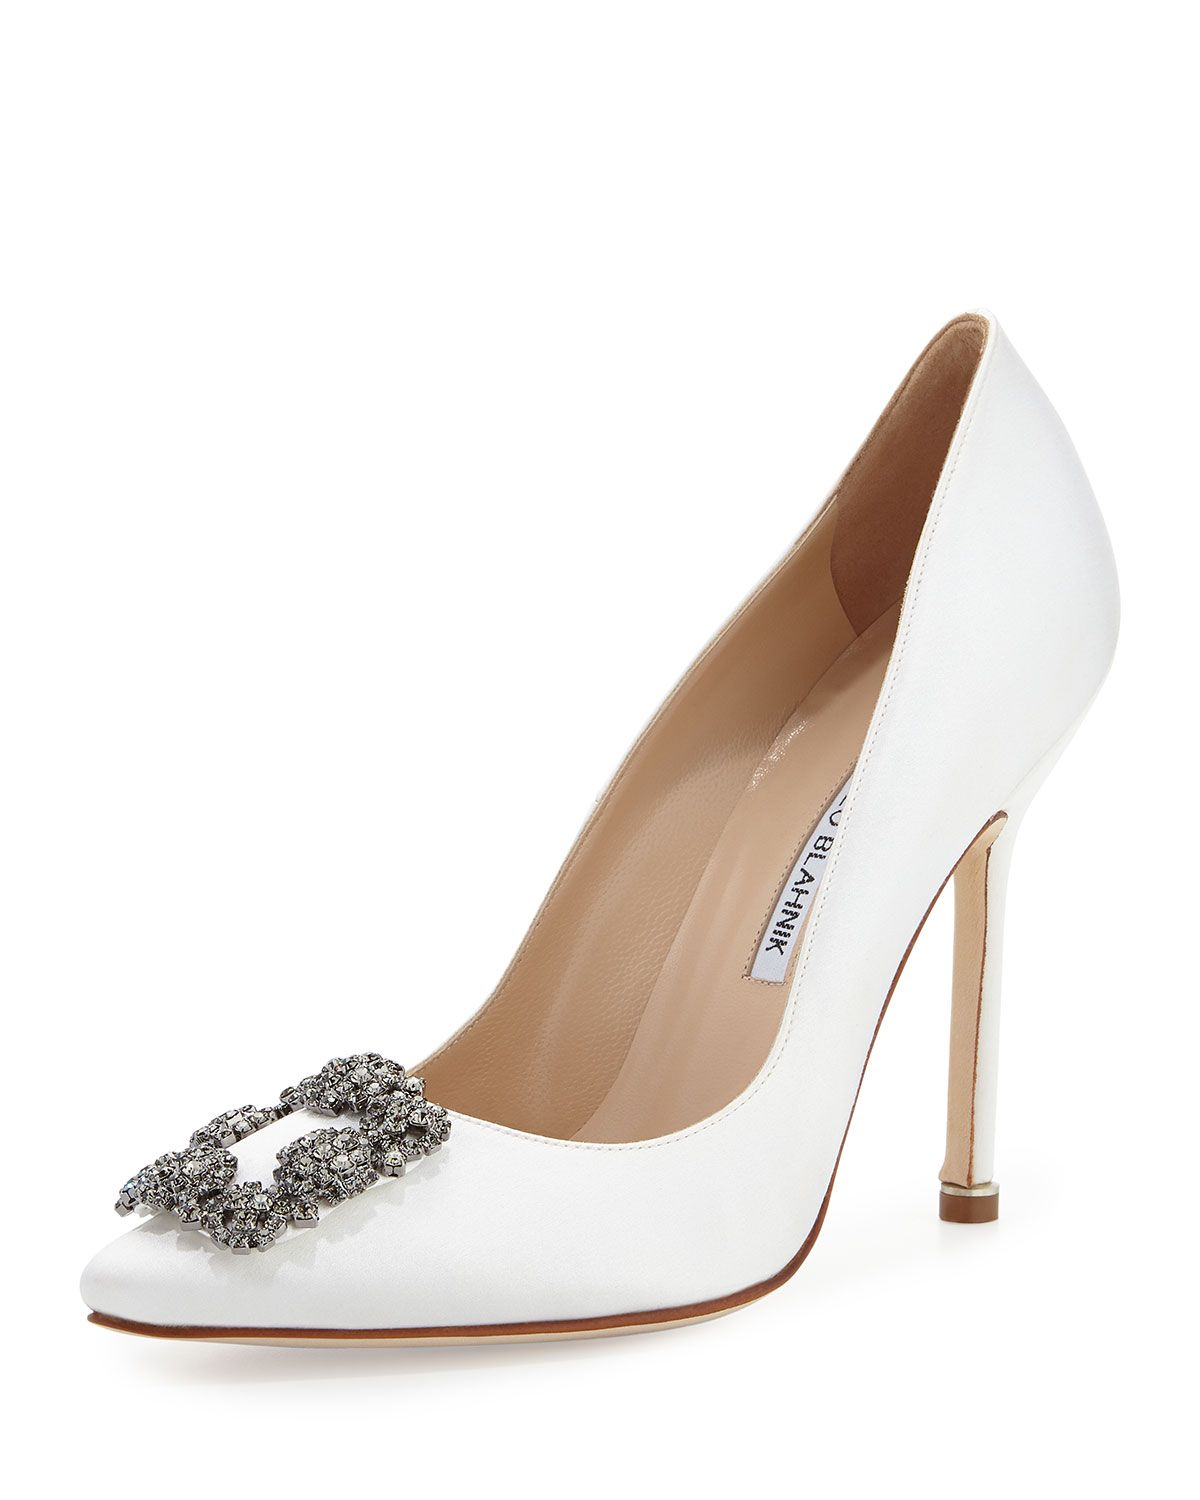 6376151f054  Hangisi  Wedding Shoes by Manolo Blahnik.